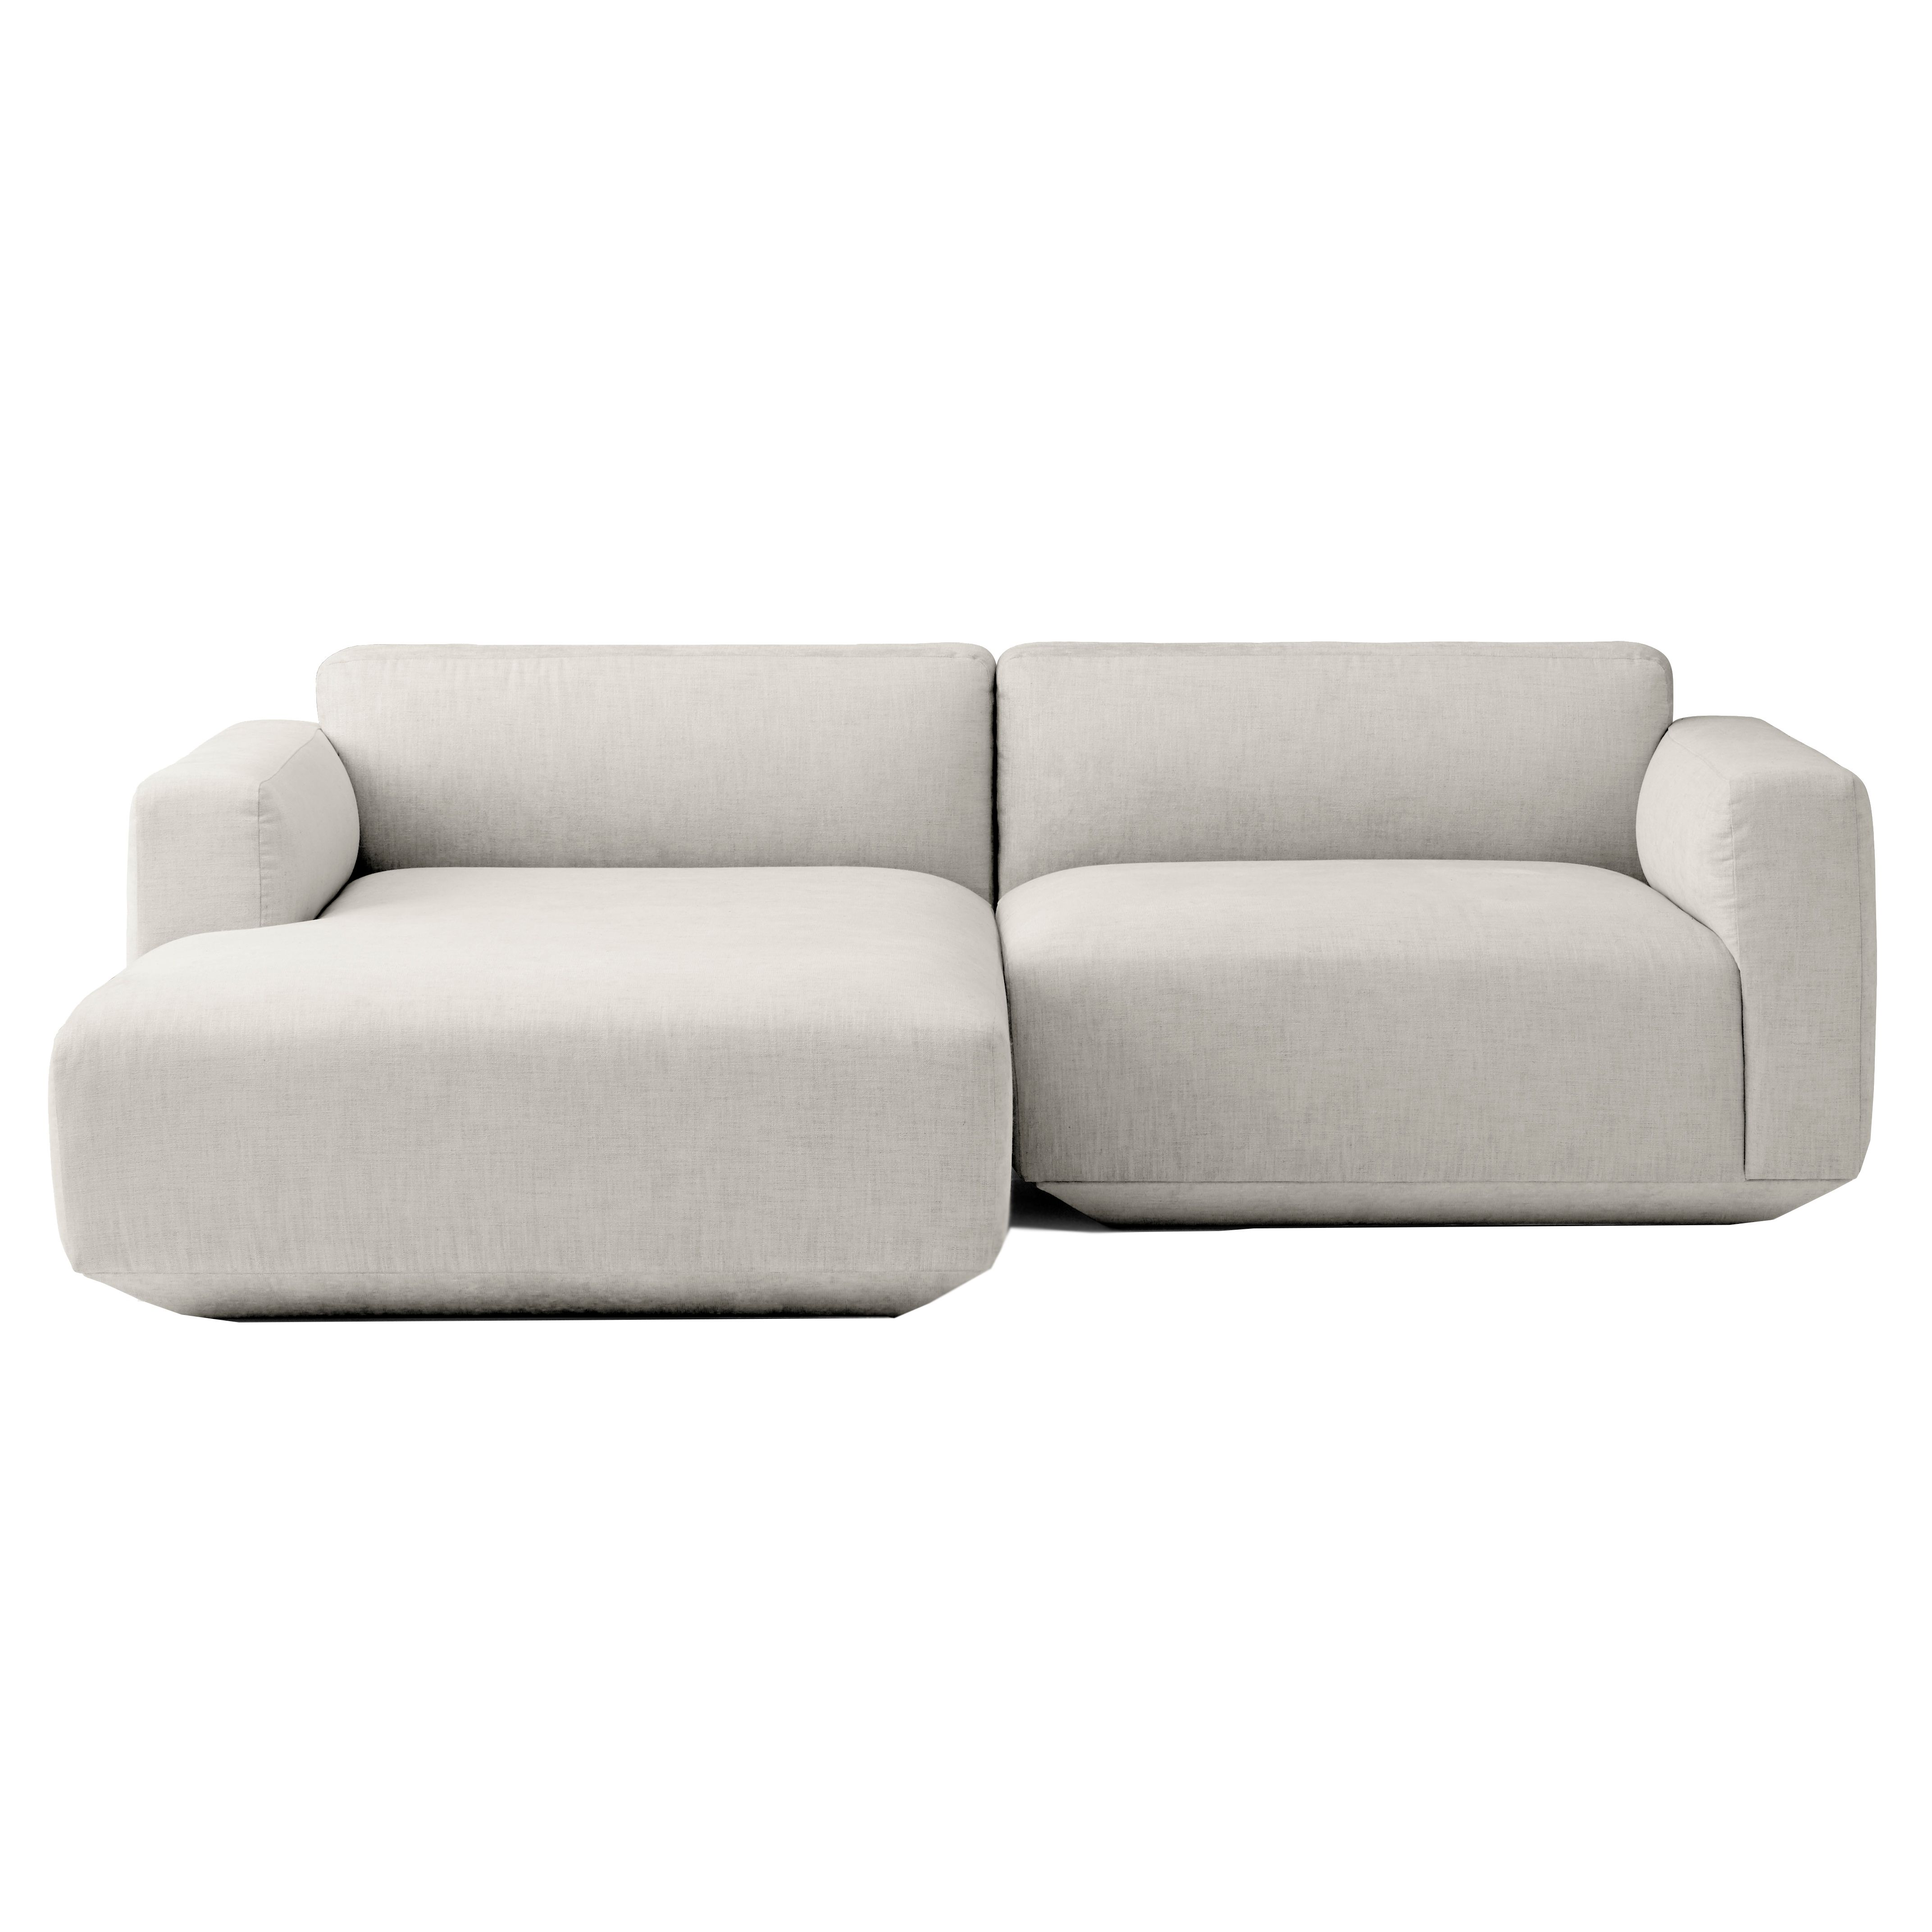 Bank Met Chaise Longue.Tradition Develius Bank 2 Zits Met Chaise Longue Links